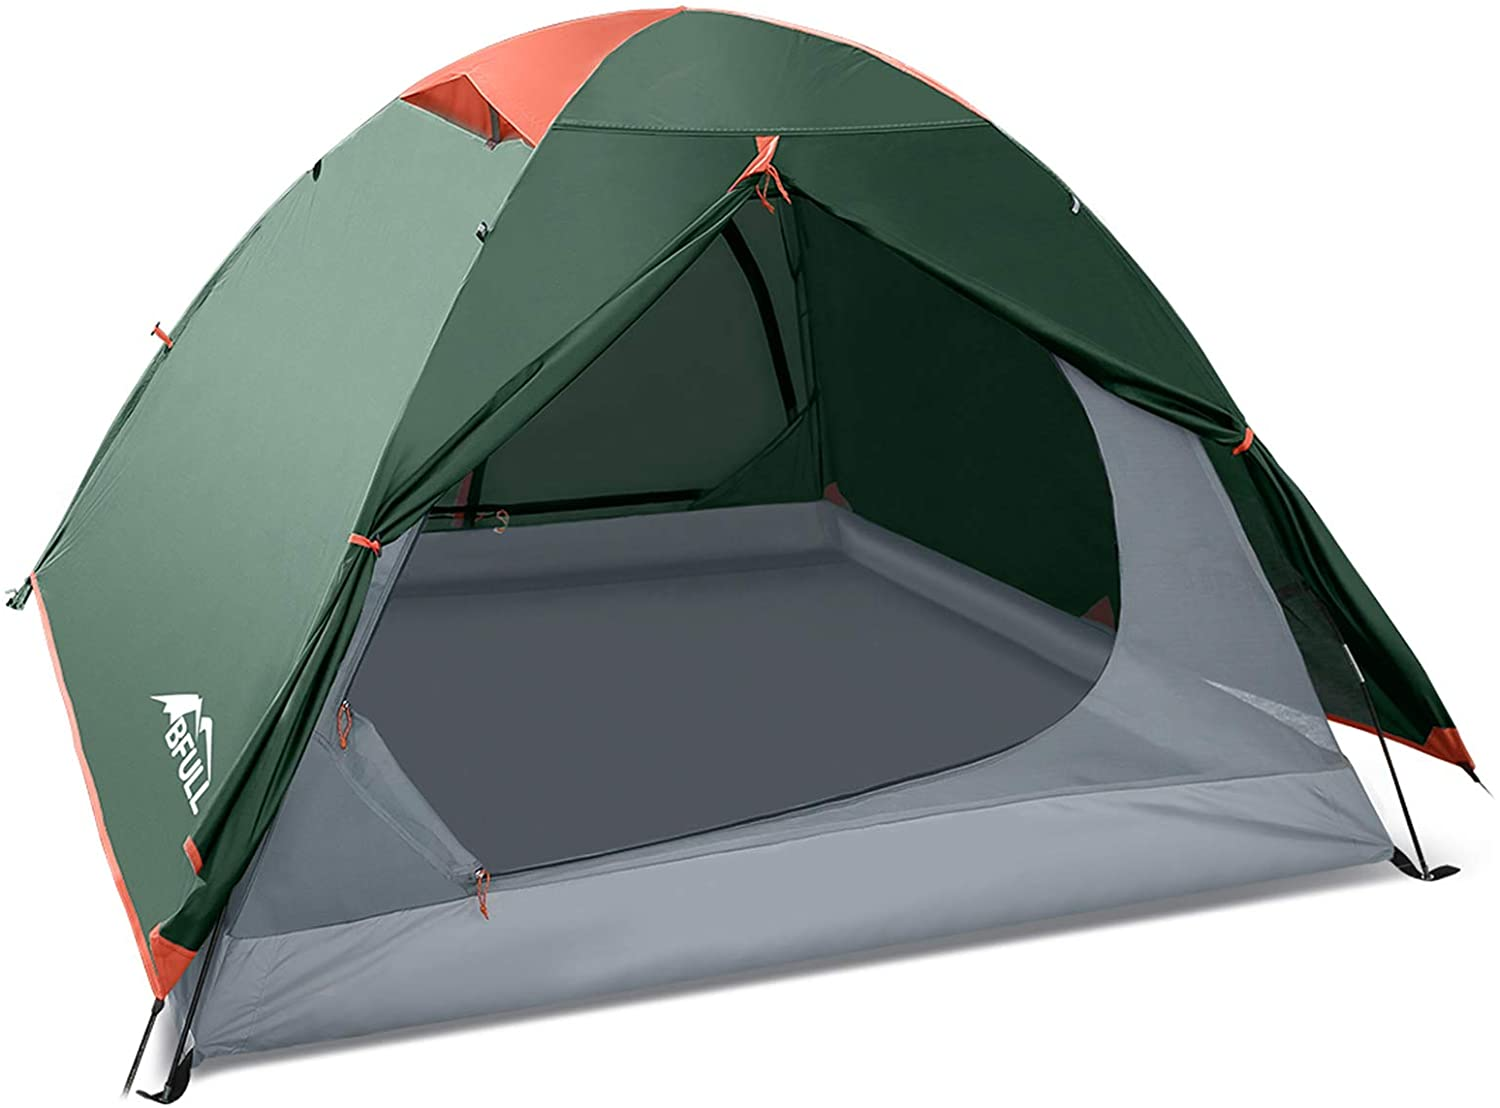 Camping Waterproof Tent 2 Person Travel Winter Fishing Tents Outdoor Hiking